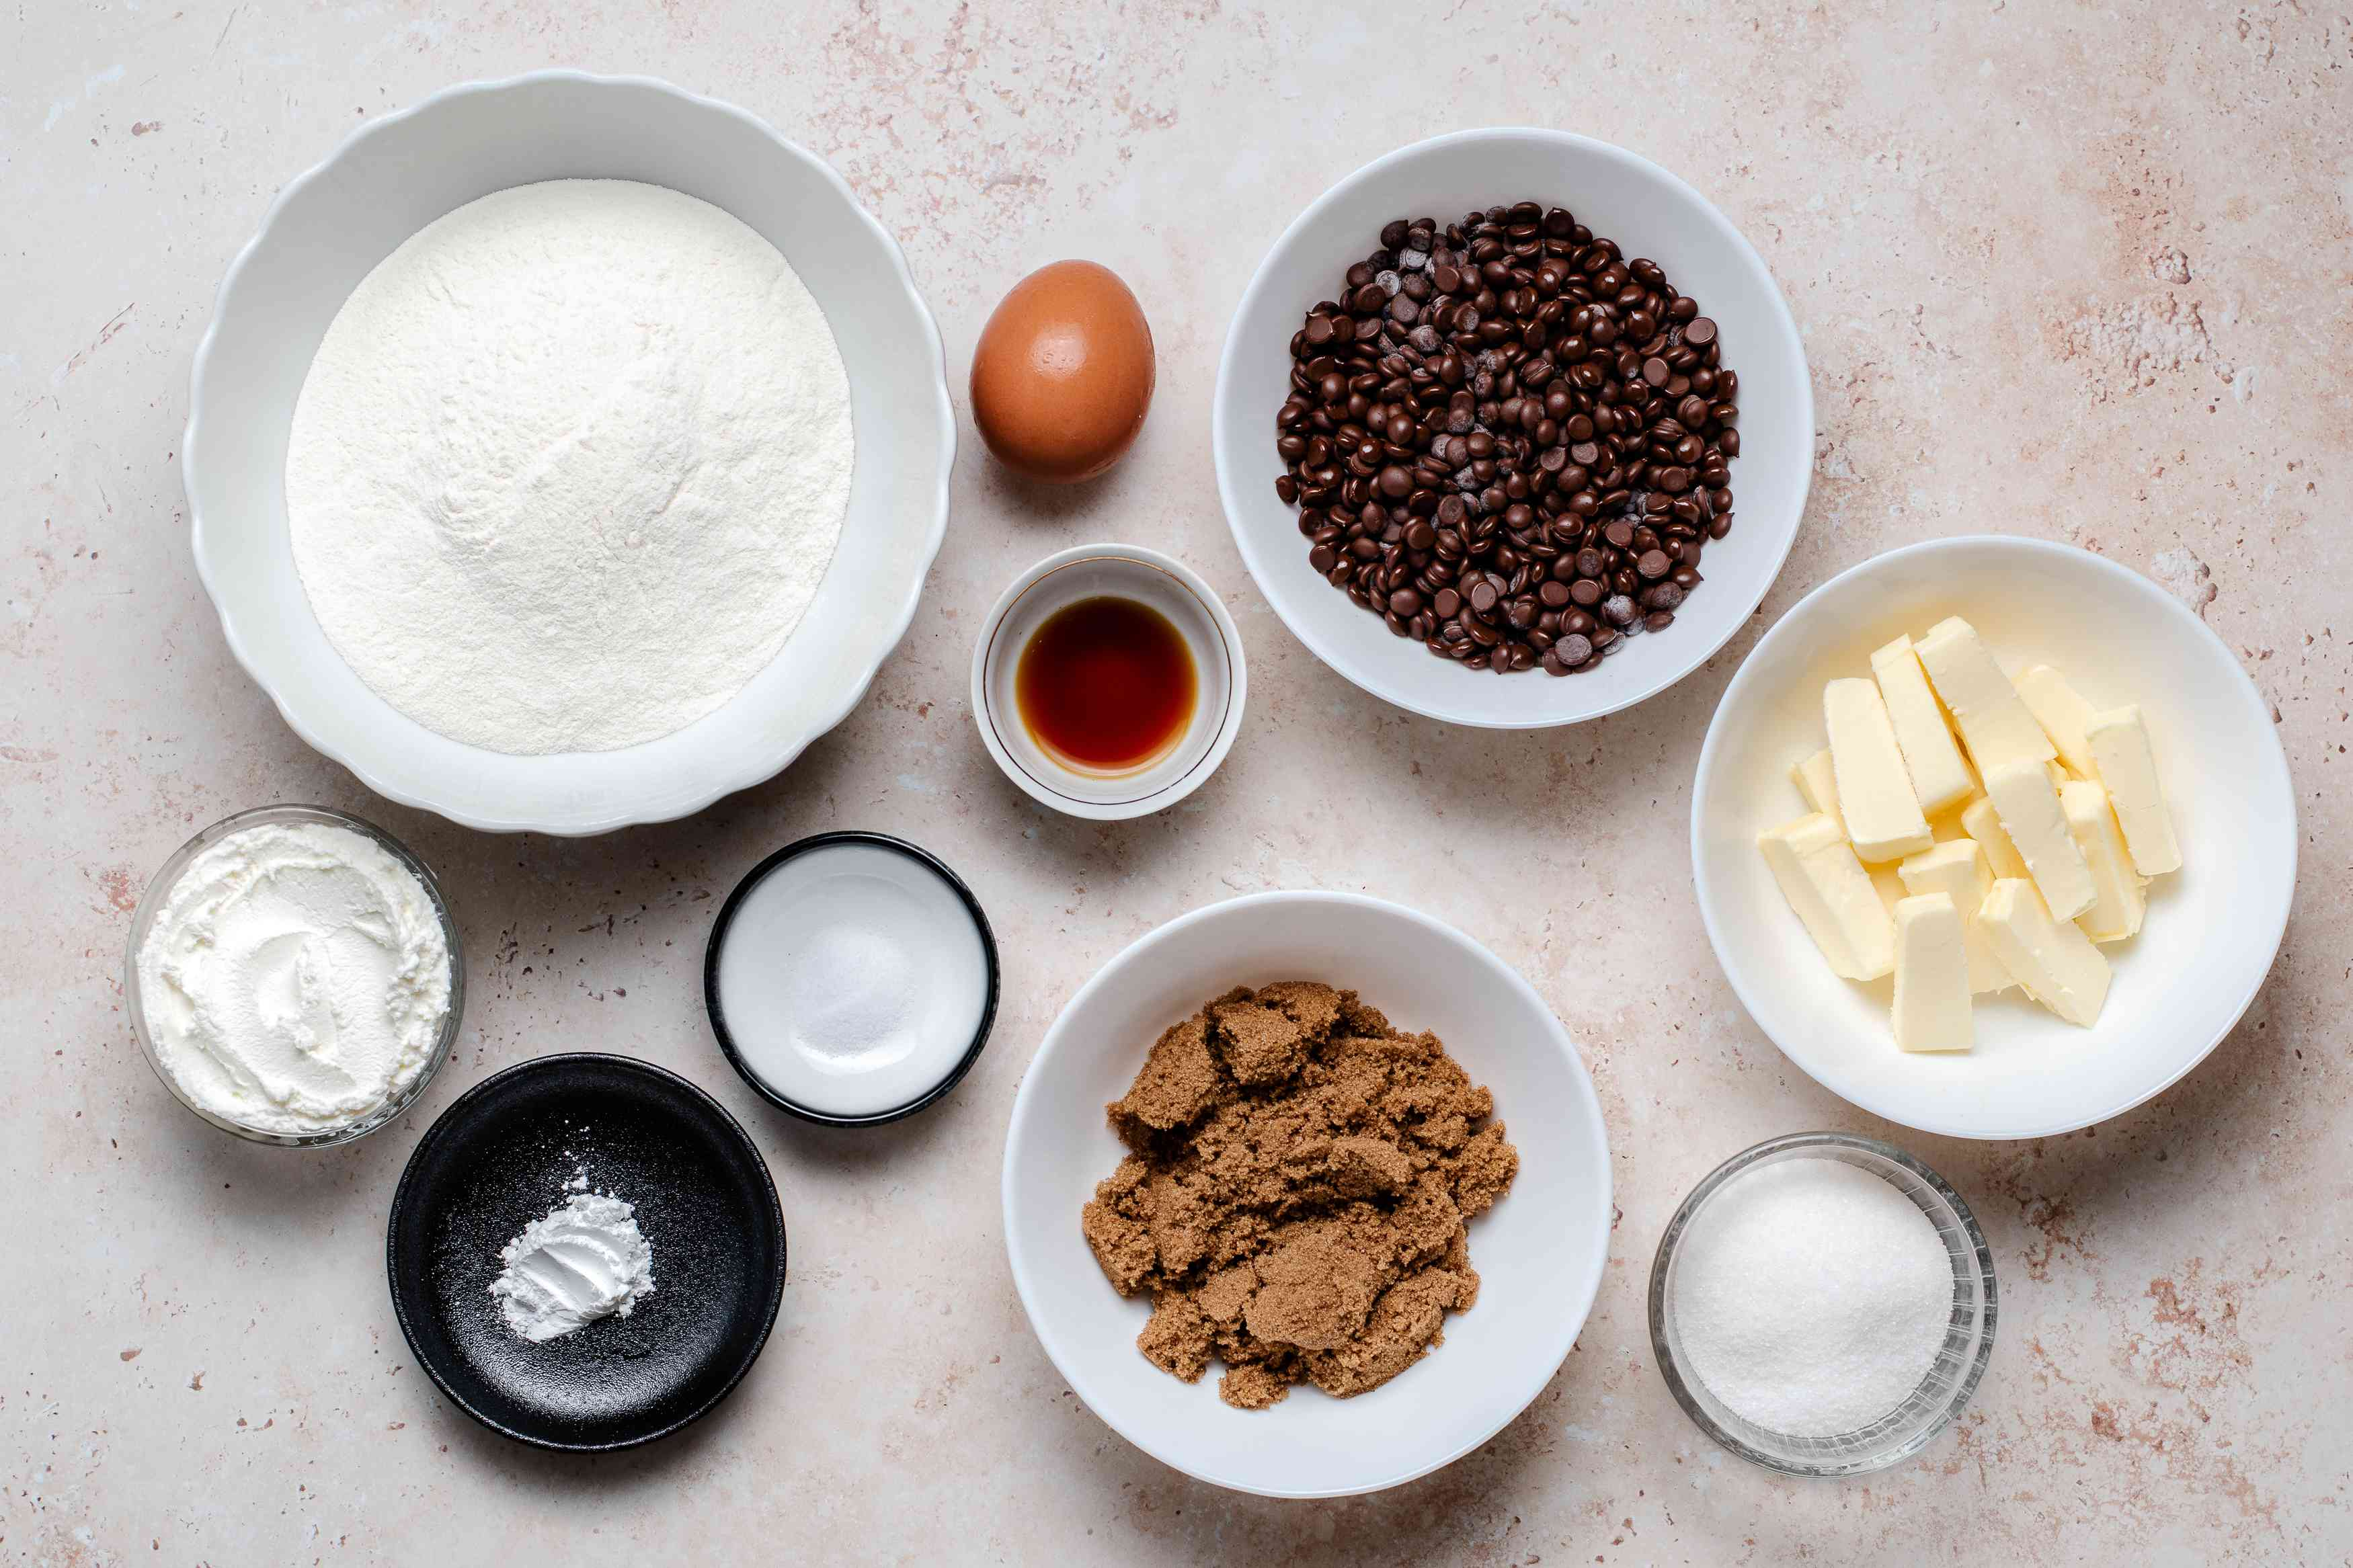 Cream Cheese Chocolate Chip Cookies ingredients